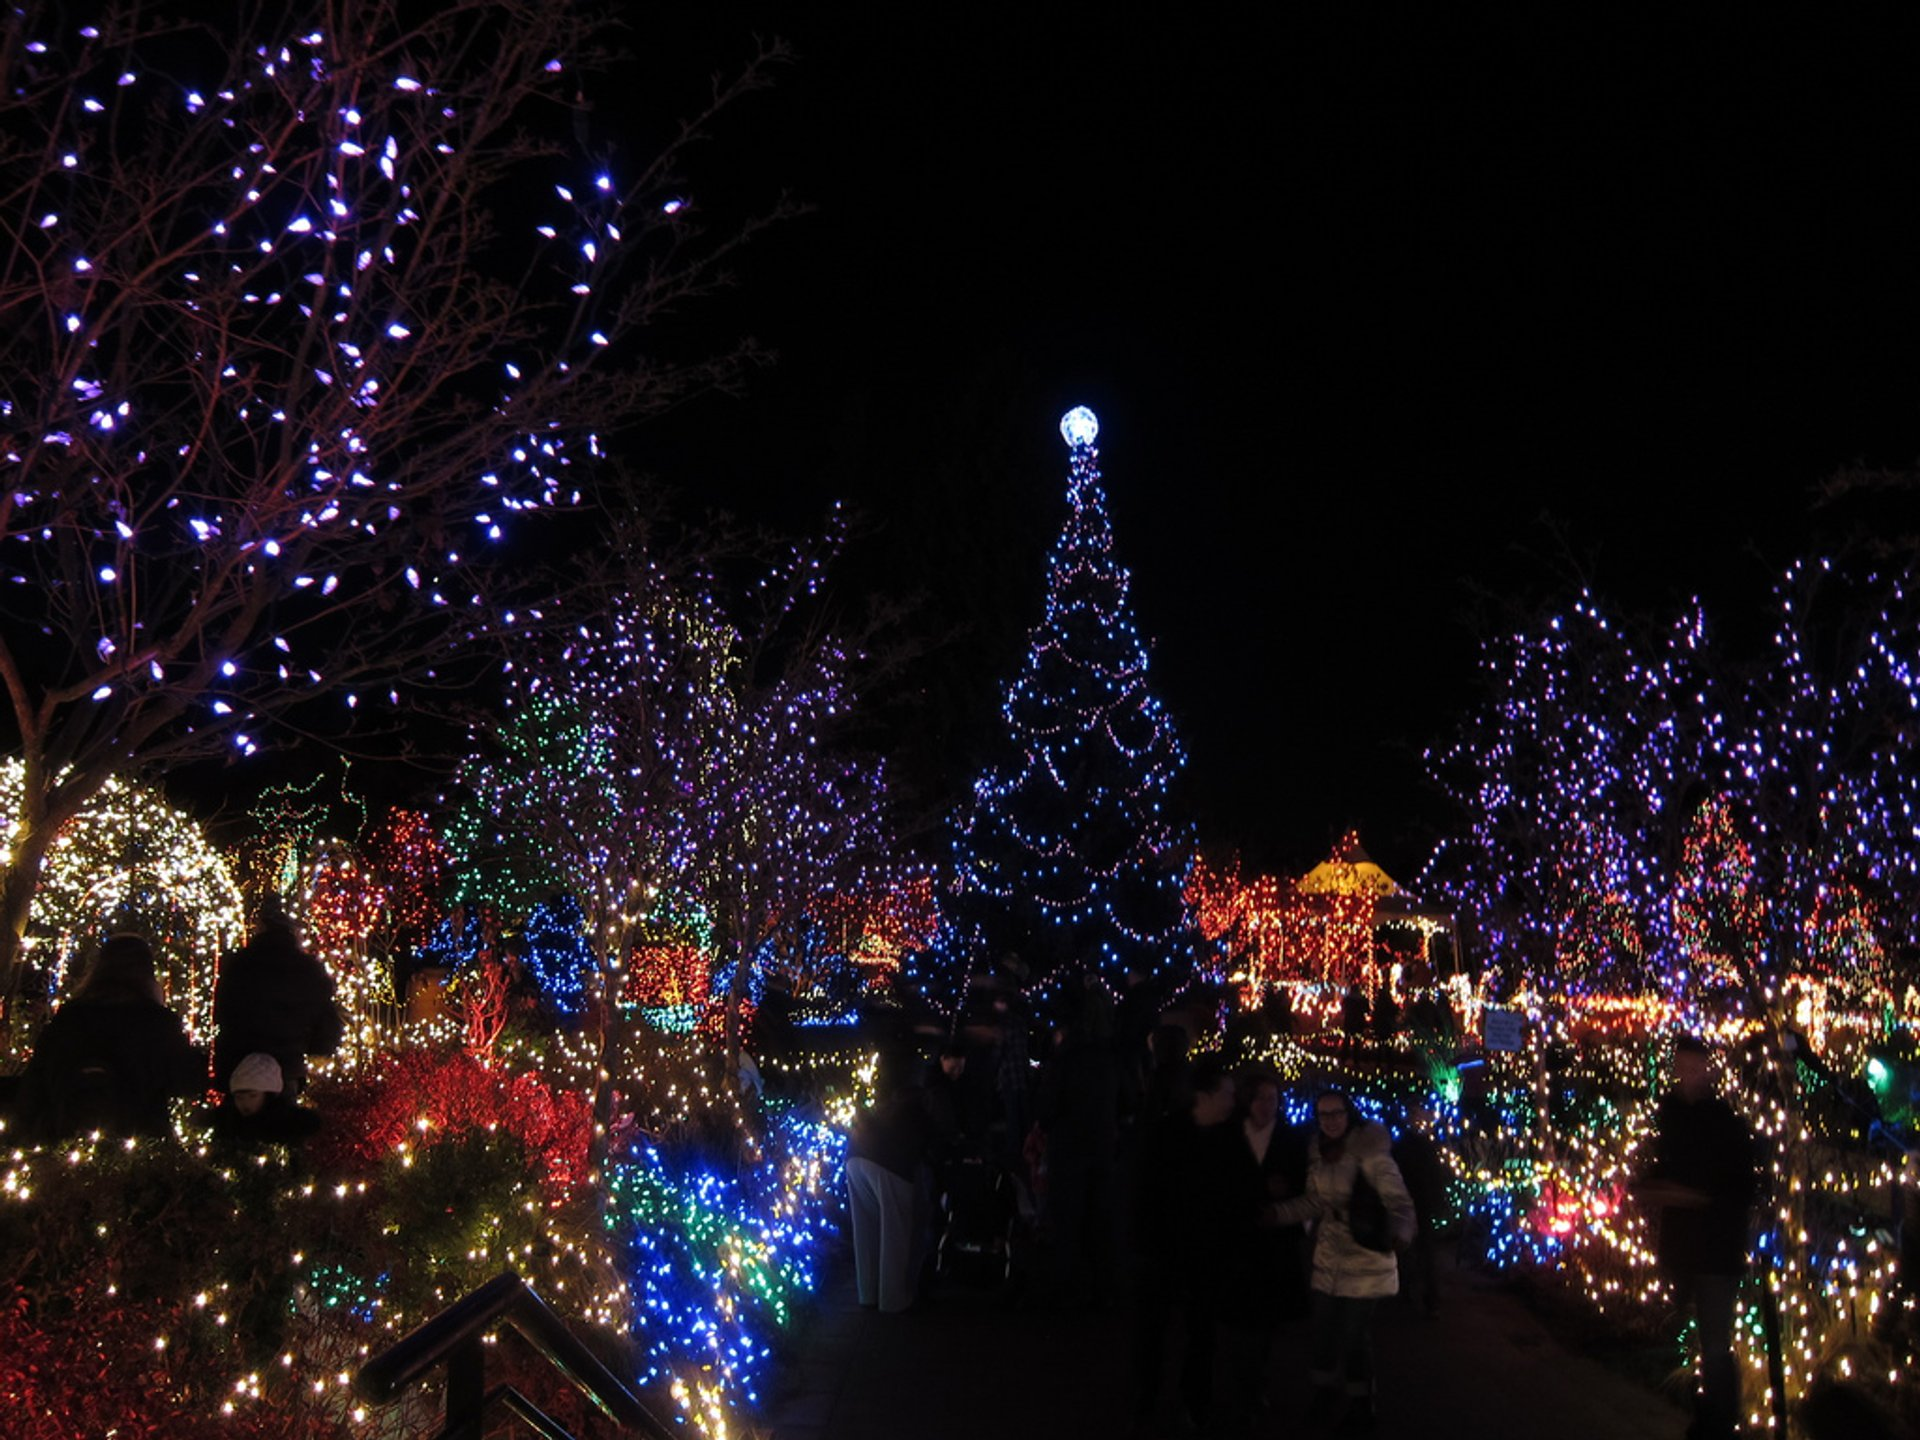 Best time to see VanDusen Festival of Lights 2020